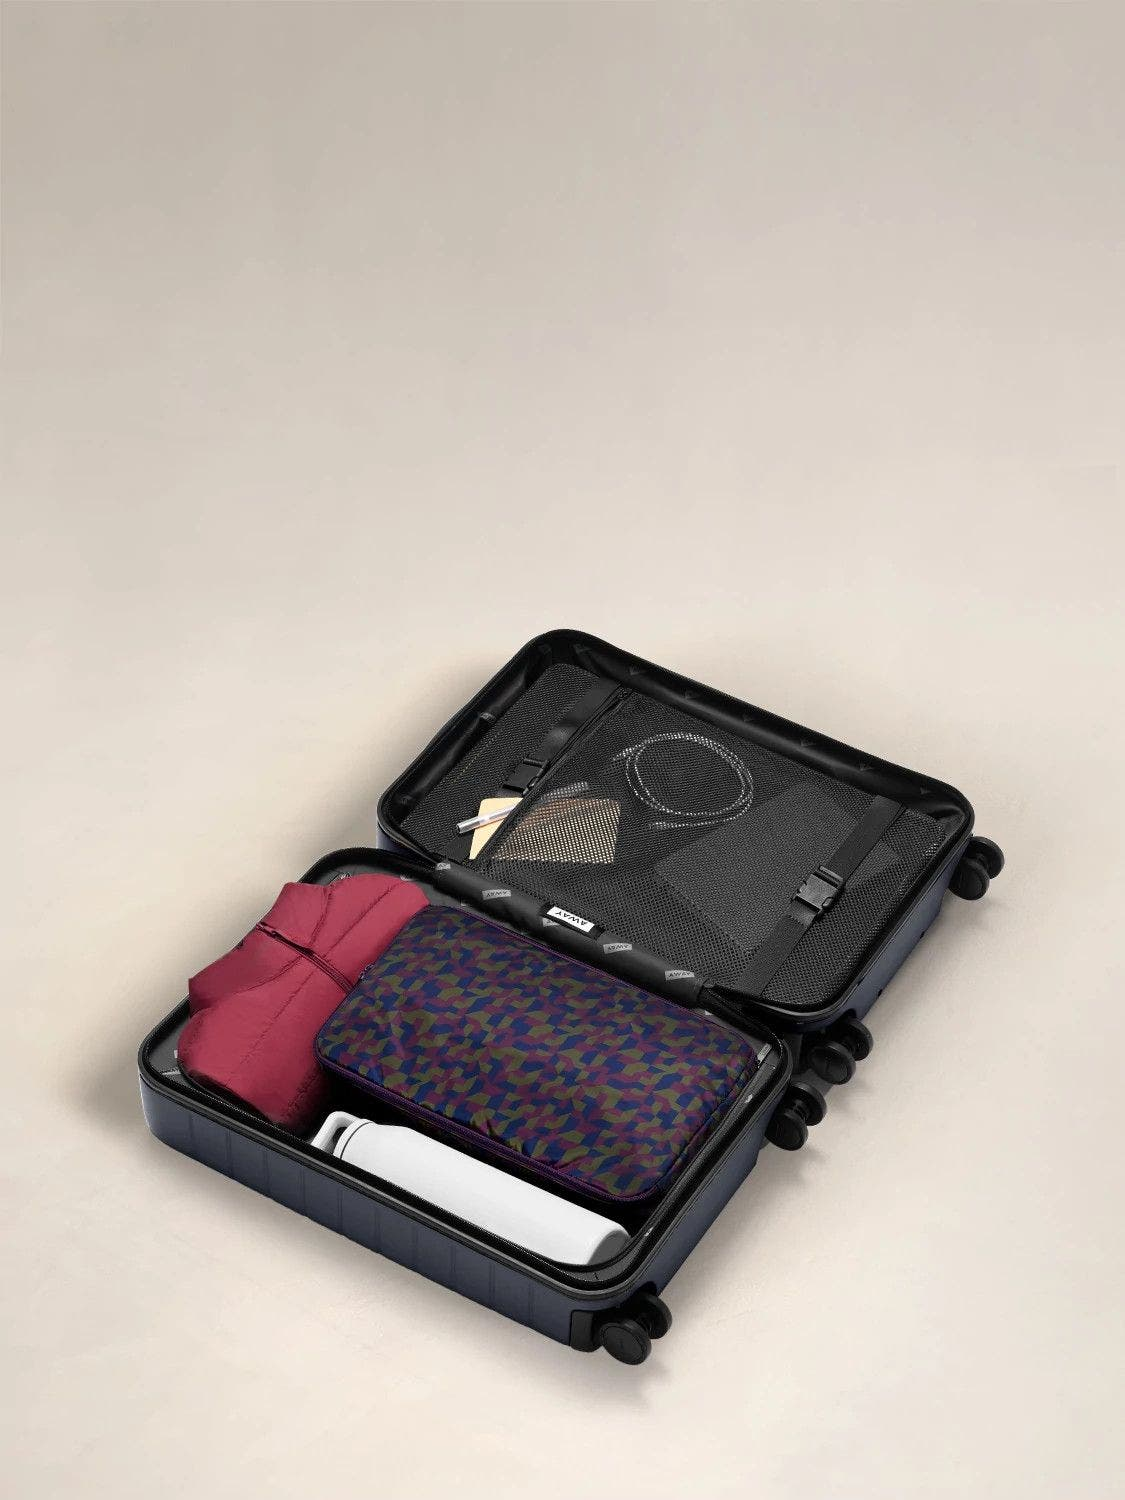 A large shoe cube in geometric print packed in an open carry-on suitcase.